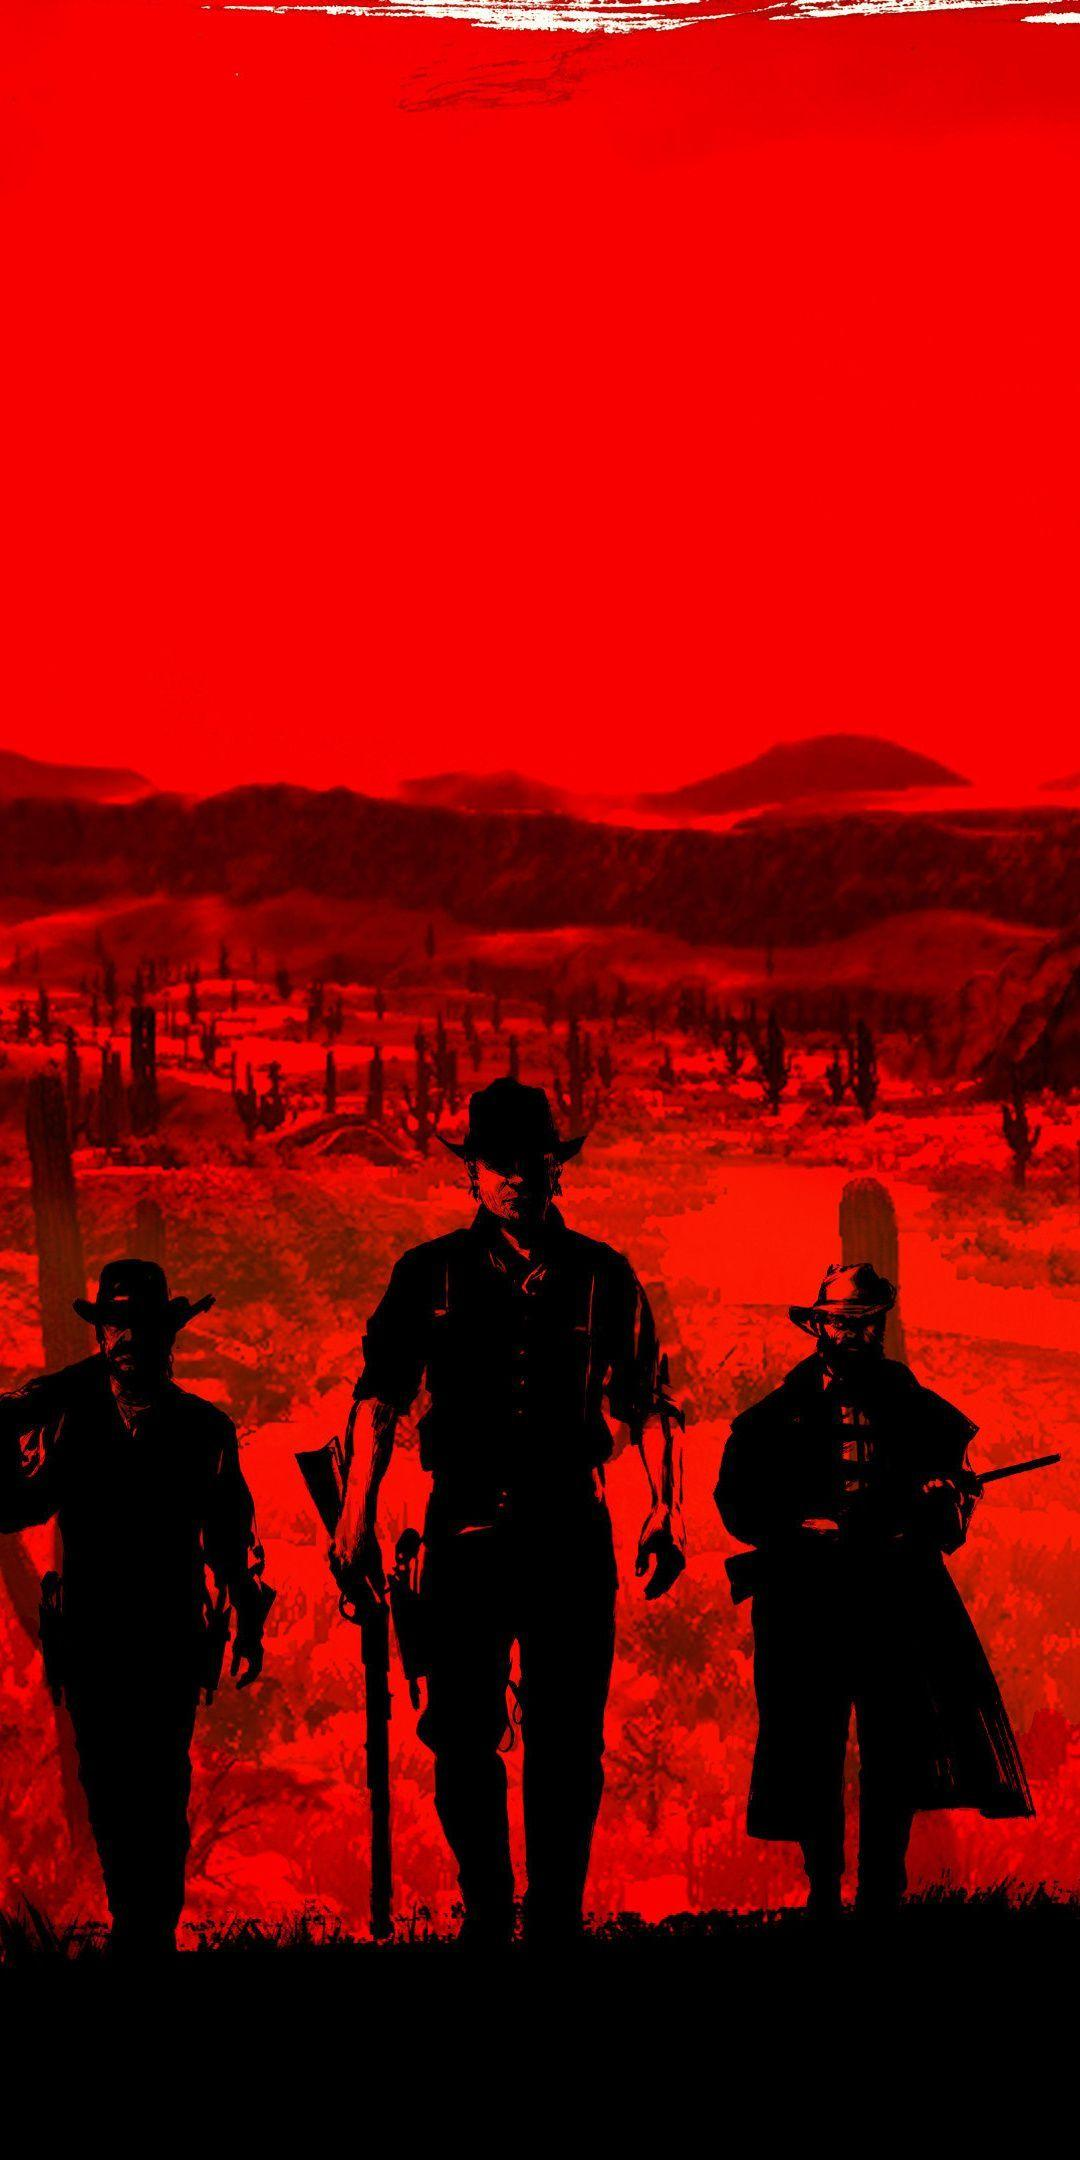 Red Dead Redemption II Wallpapers - Wallpaper Cave